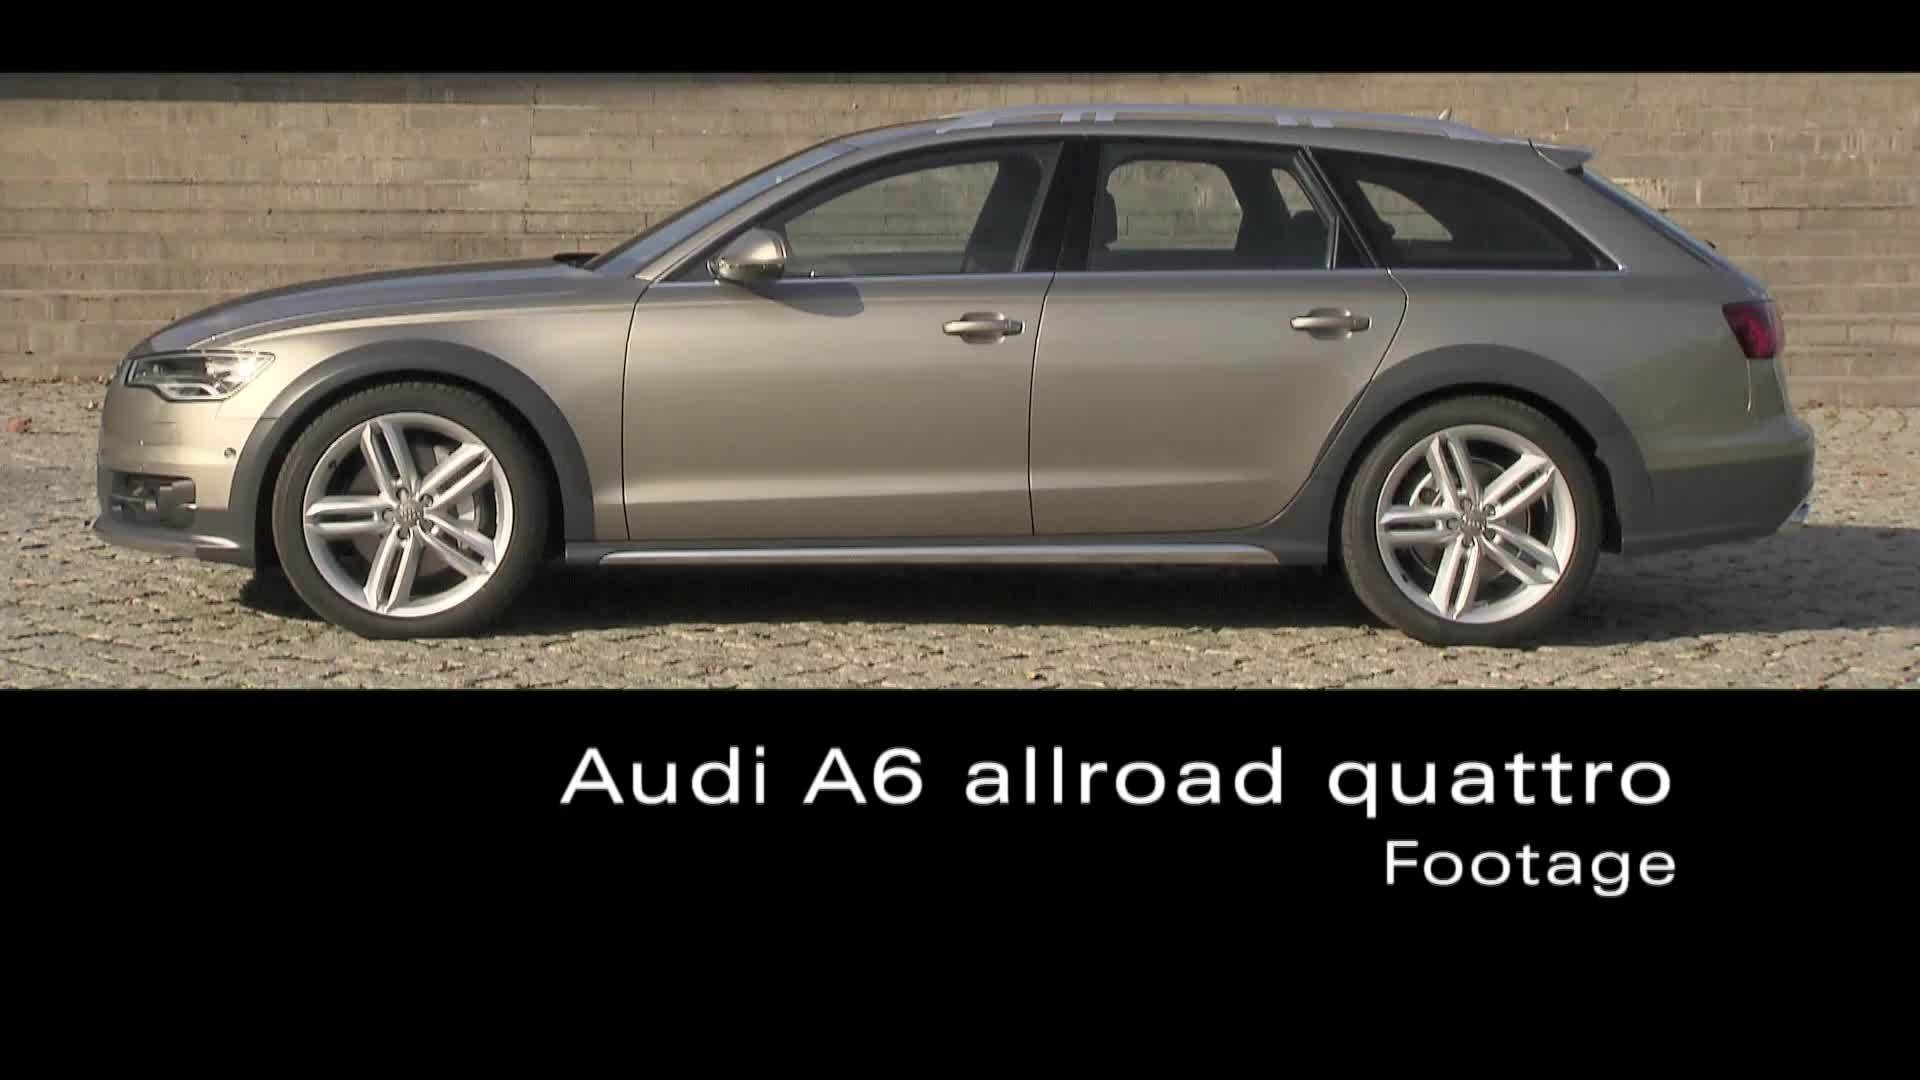 The Audi A6 allroad quattro - Footage